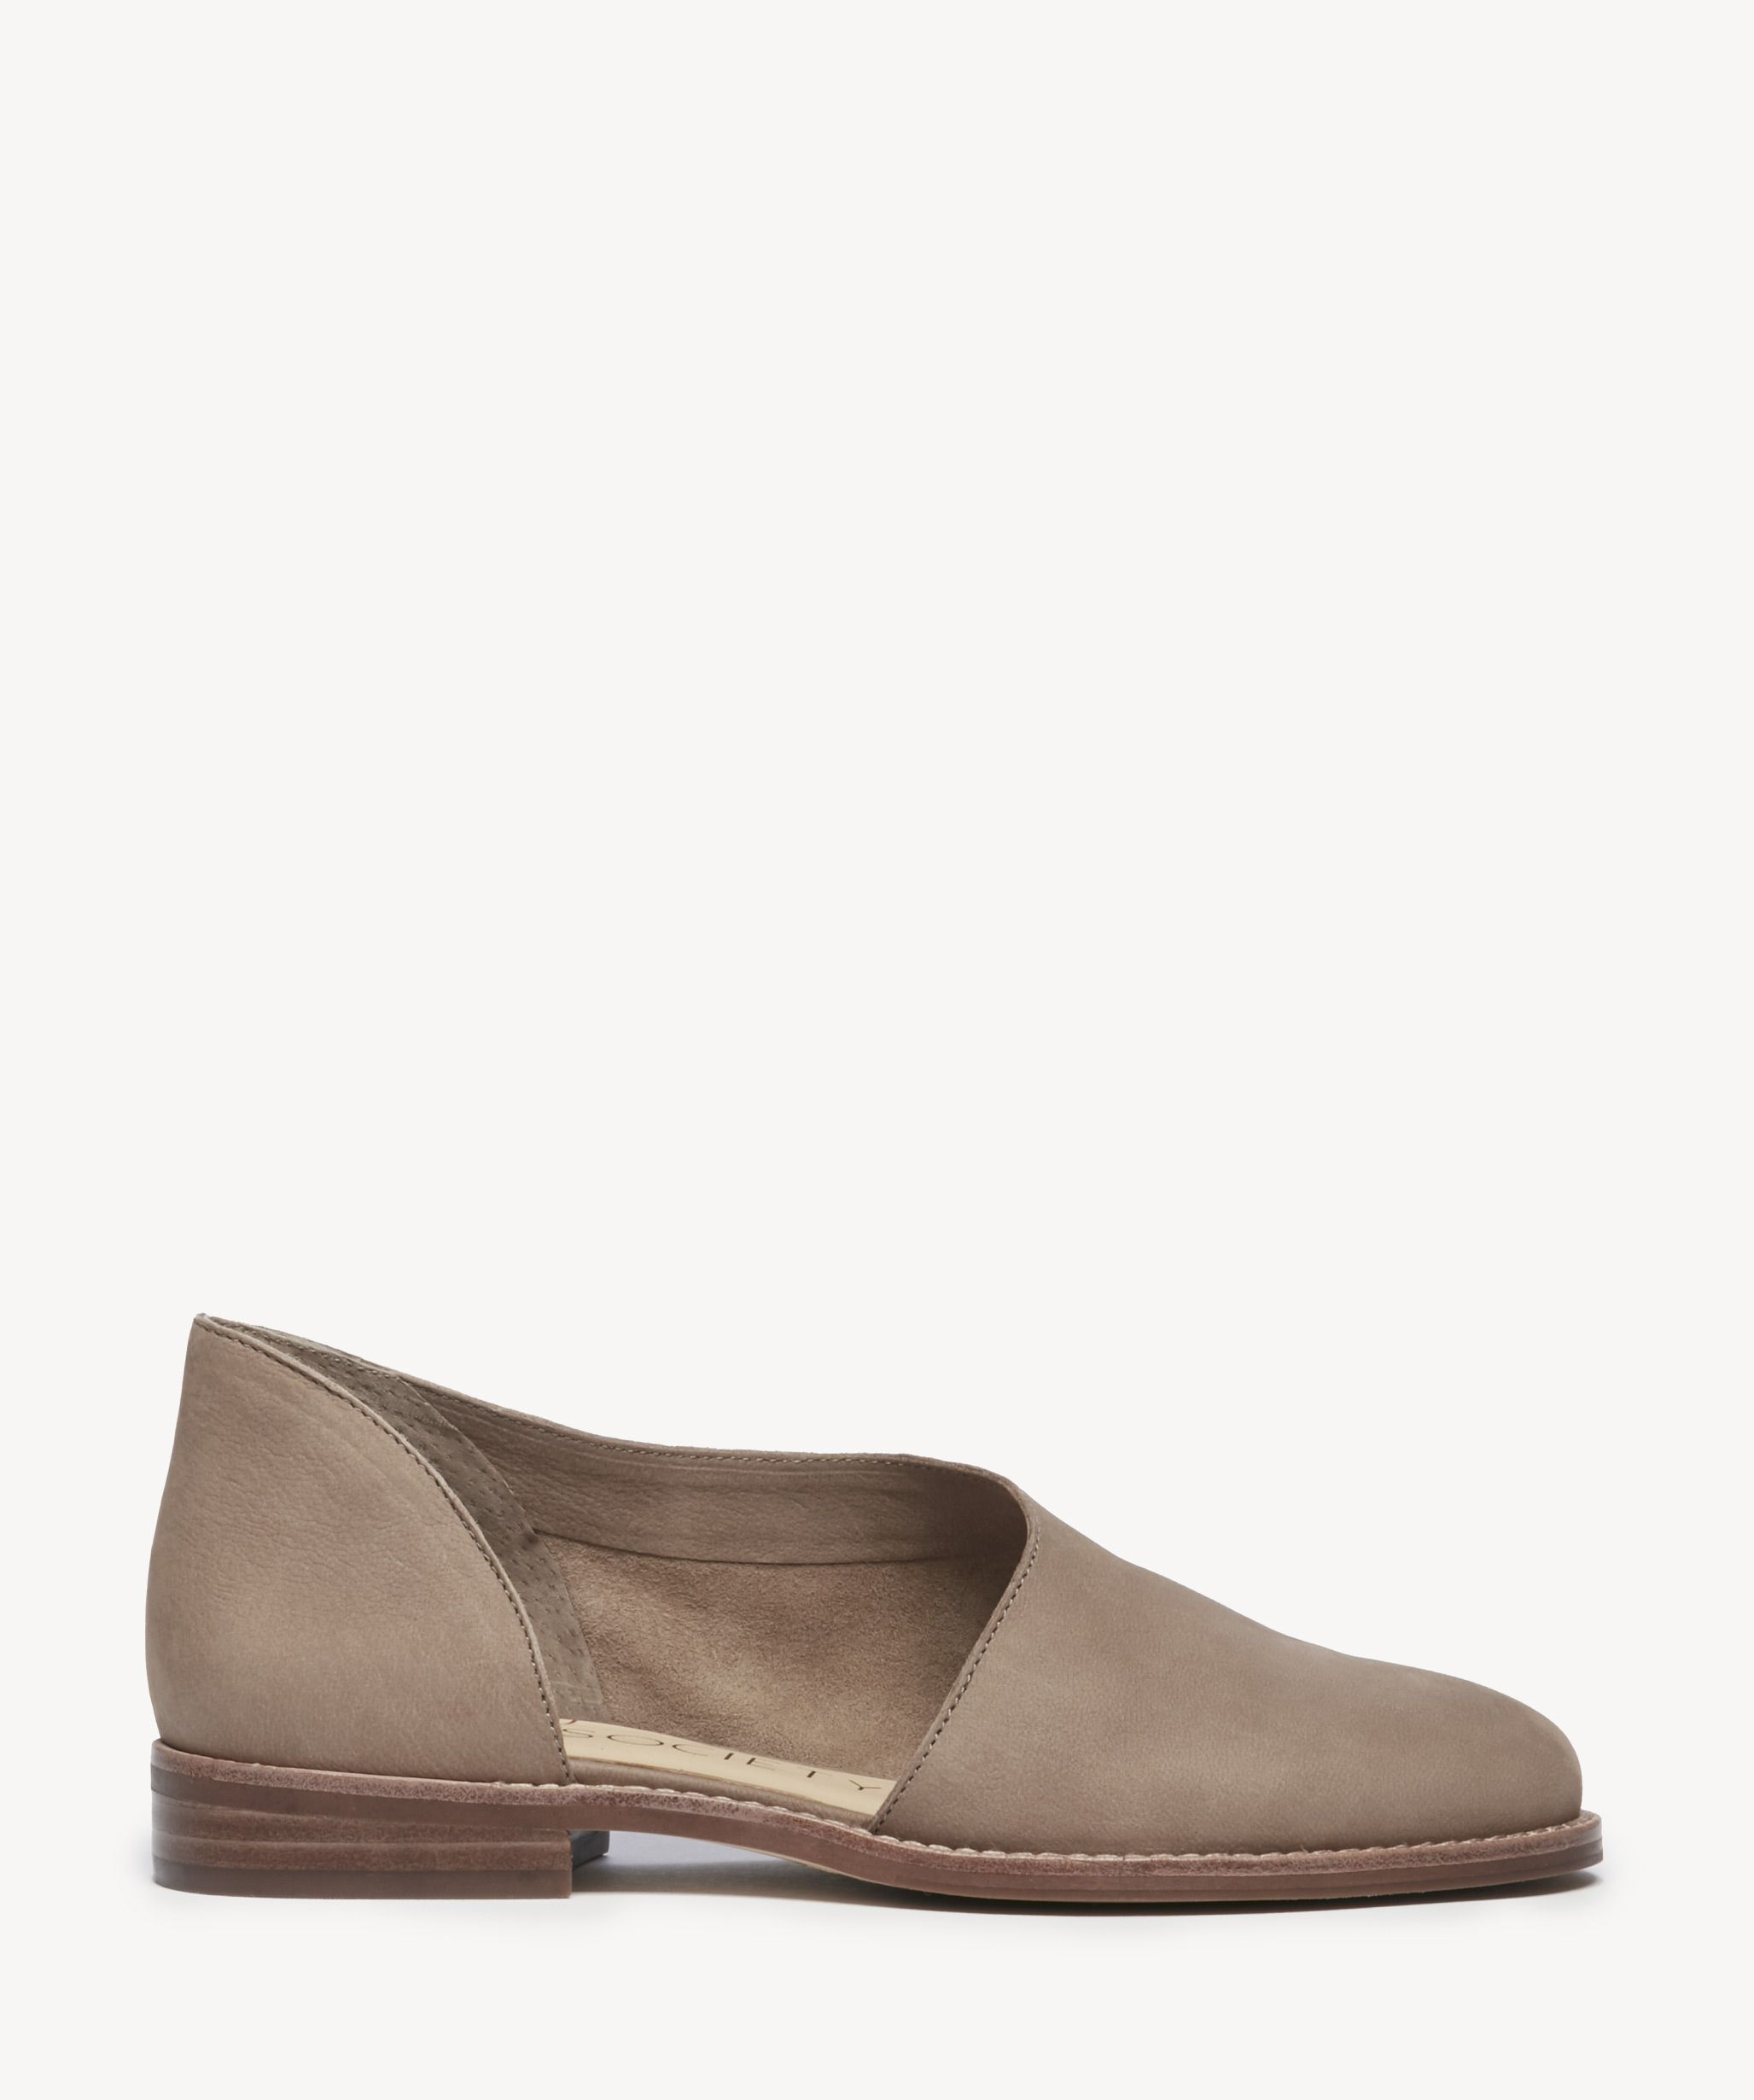 845218e60e5 Women's Betianne Asymmetrical Flats Taupe | Size 6.5 Leather From Sole  Society